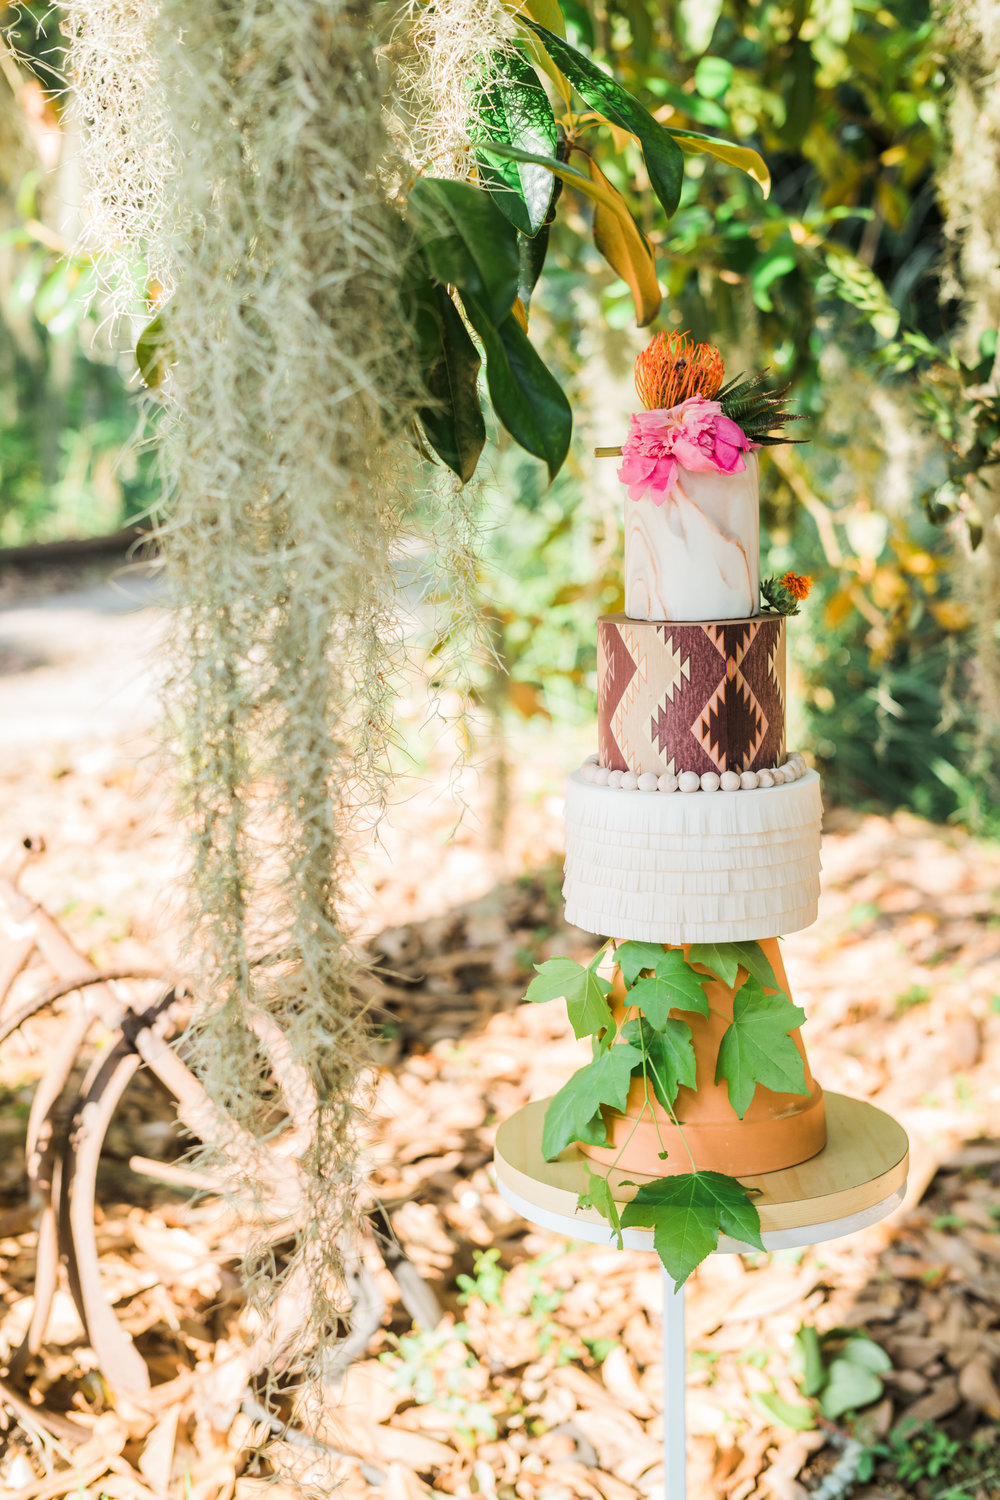 southwestern-wedding-cake-ivory-and-beau-savannah-wedding-planner-savannah-event-designer-savannah-wedding-cakes-the-topiary-alpaca-wedding-bud-johnson-photography-savannah-baker-savannah-unique-weddings-savannah-creative-wedding-inspiration.jpg